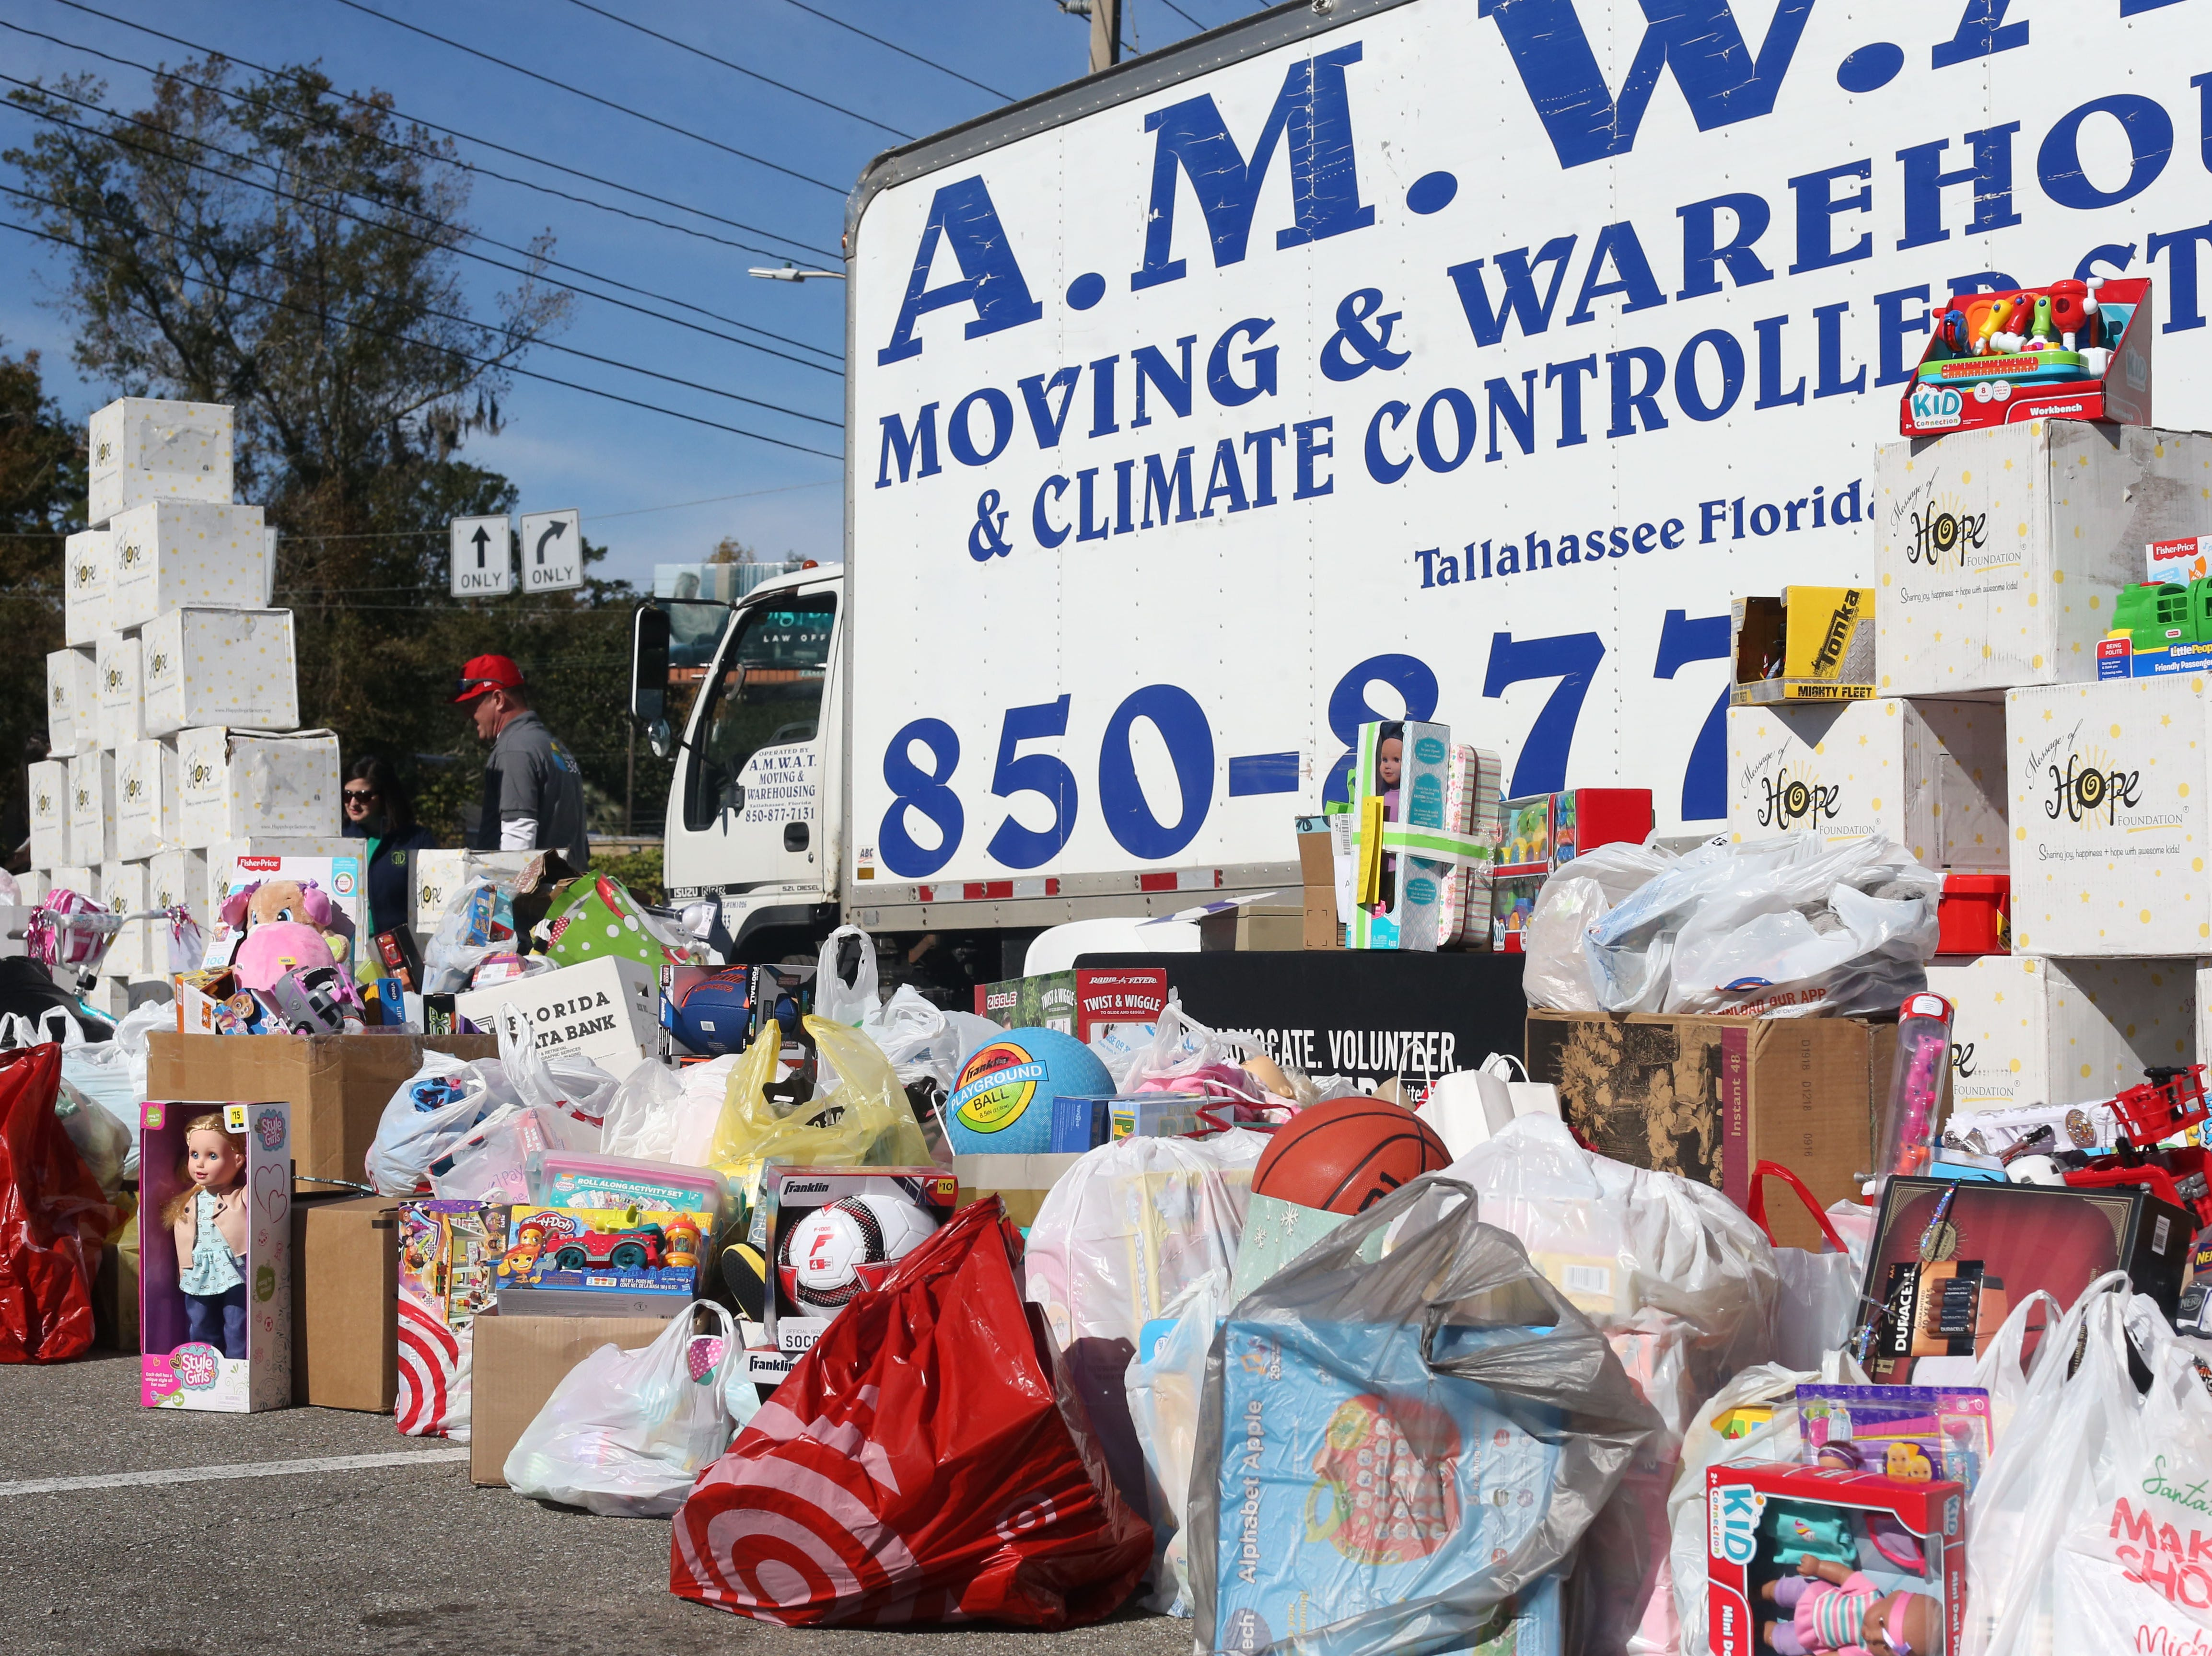 Rebuild 850 hosts a toy drive for children impacted by Hurricane Michael outside of the Tallahassee Democrat, Thursday, Dec. 6, 2018.